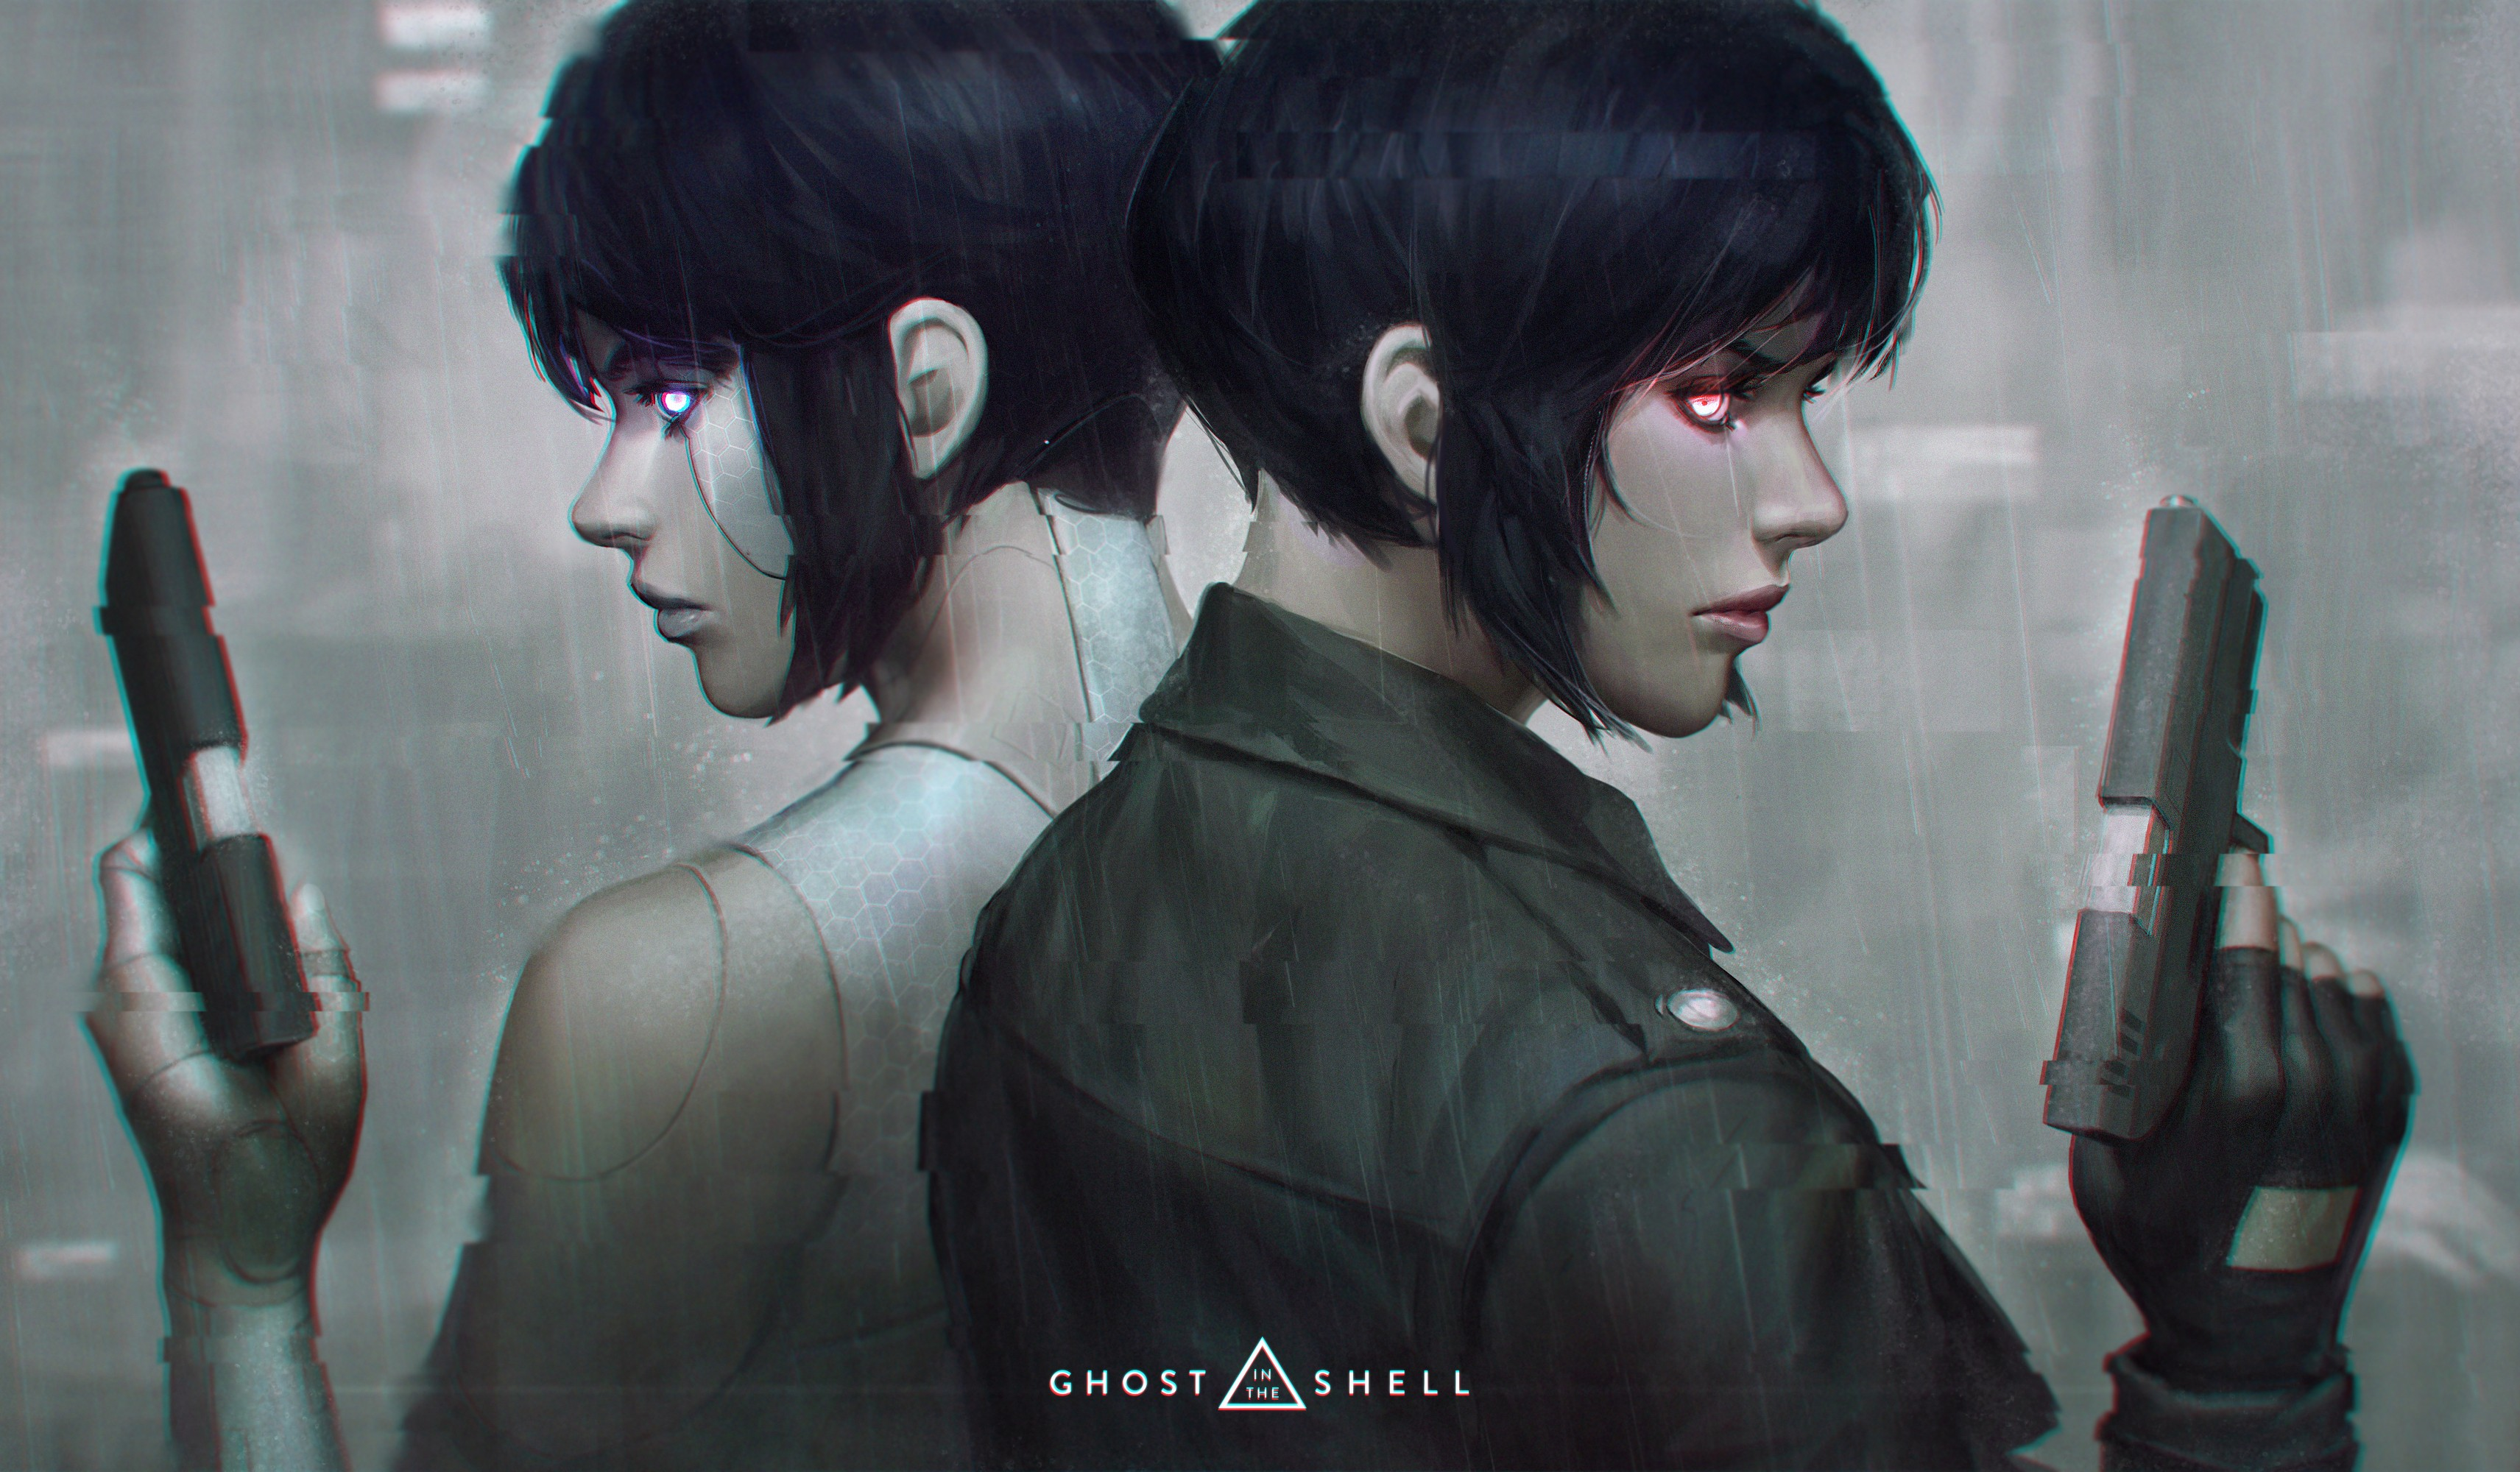 Anime 3423x2000 Ghost in the Shell cyborg gun blue hair blue eyes red eyes futuristic side view Kusanagi Motoko anime rain noir cyberpunk profile